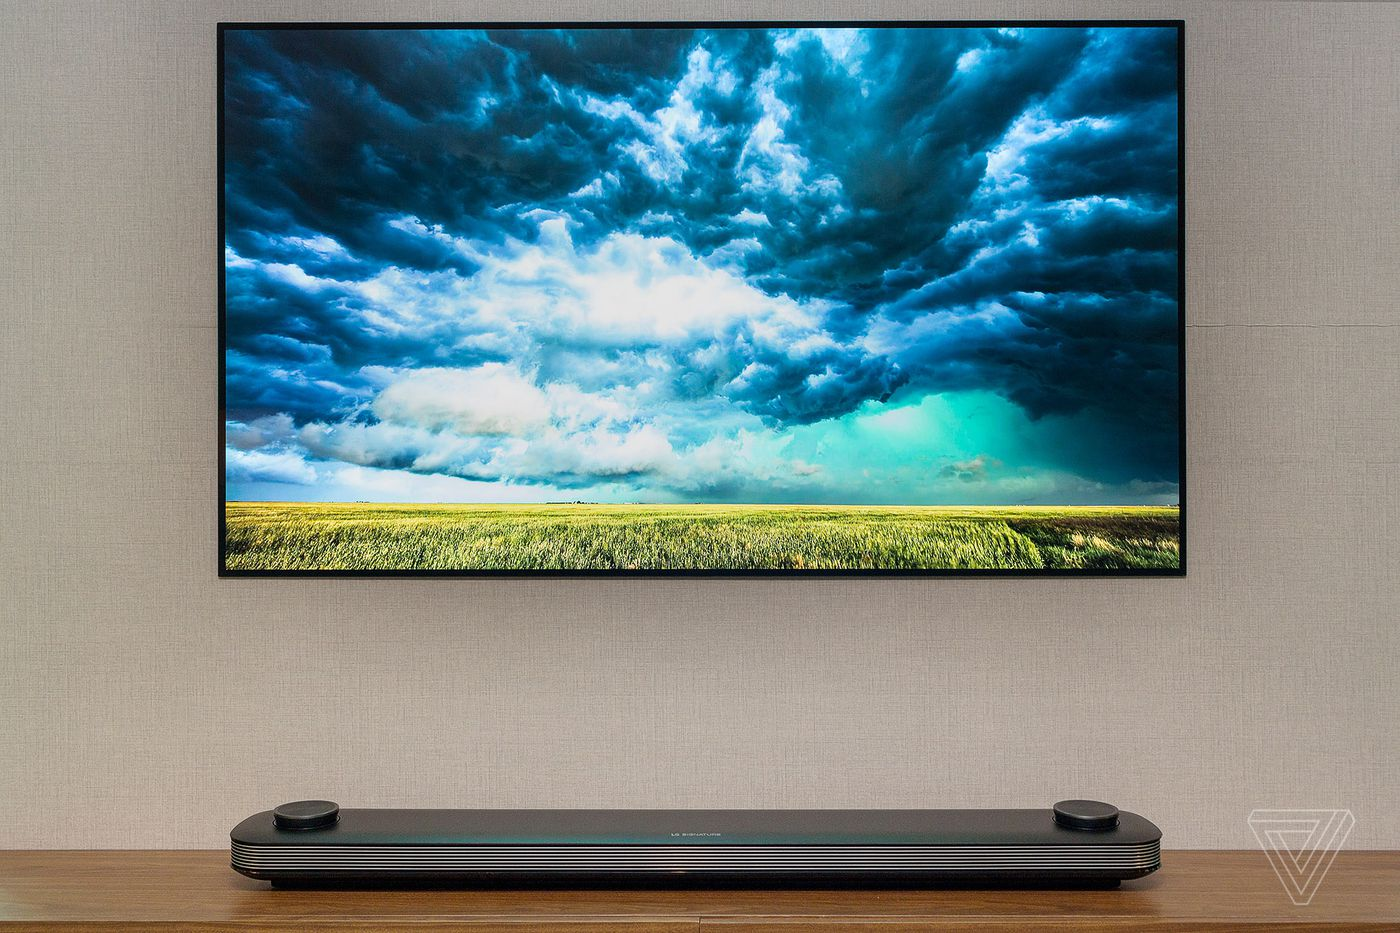 Lg S Excellent Oled Tvs Are Getting Steep Discounts For Black Friday The Verge